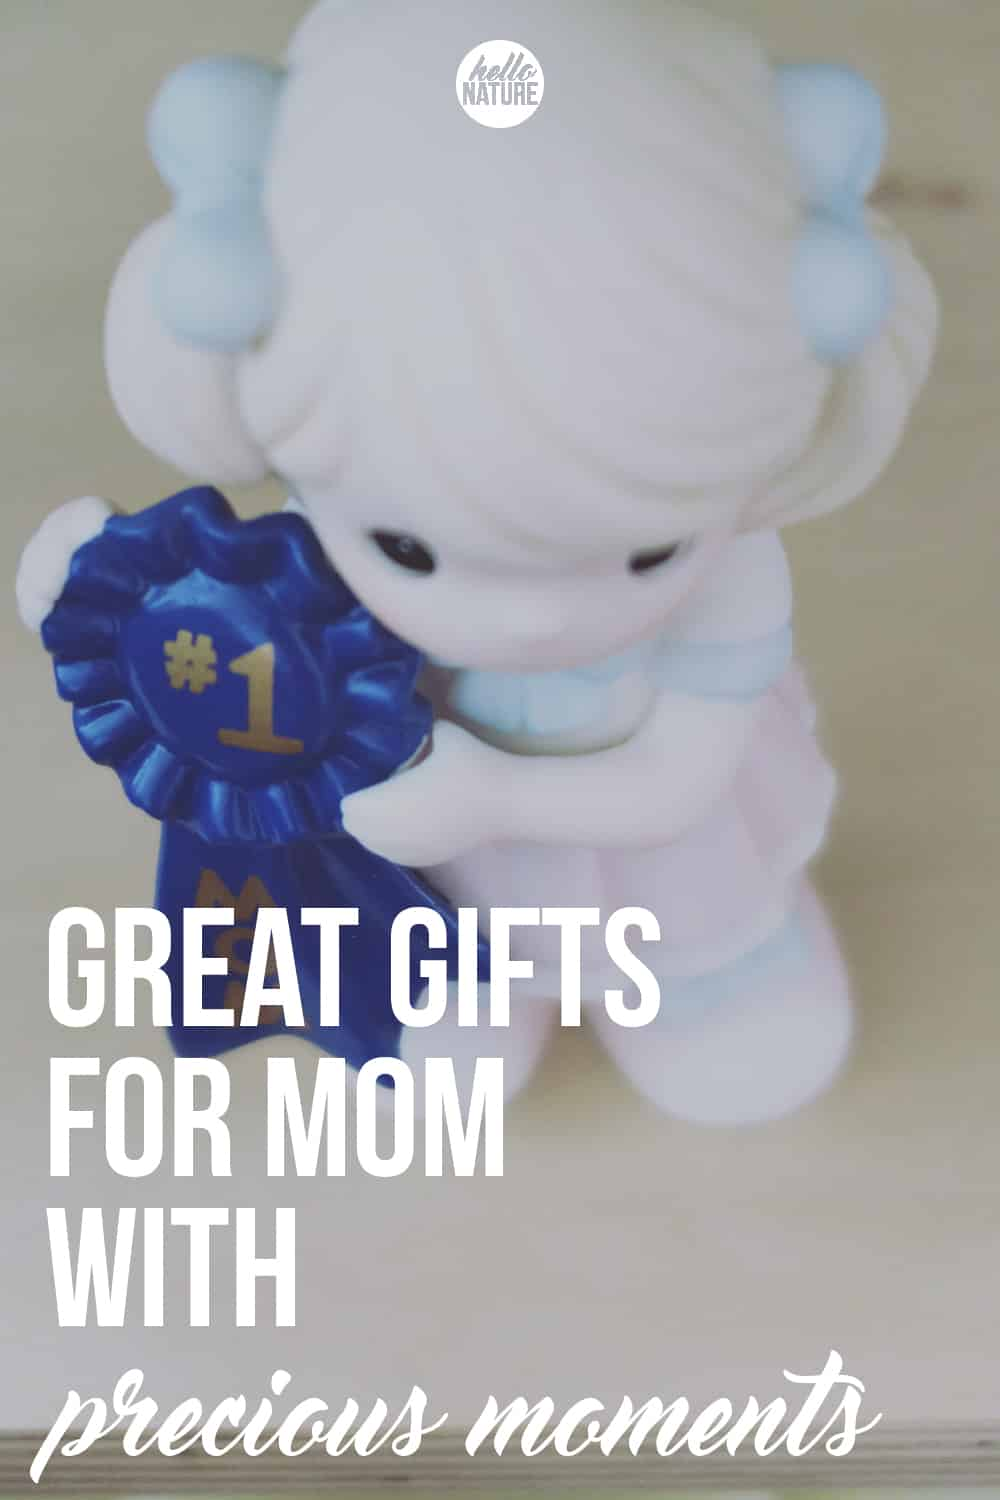 Need a gift for mom that she'll remember forever? Show her how much you appreciate her with a gift from Precious Moments!